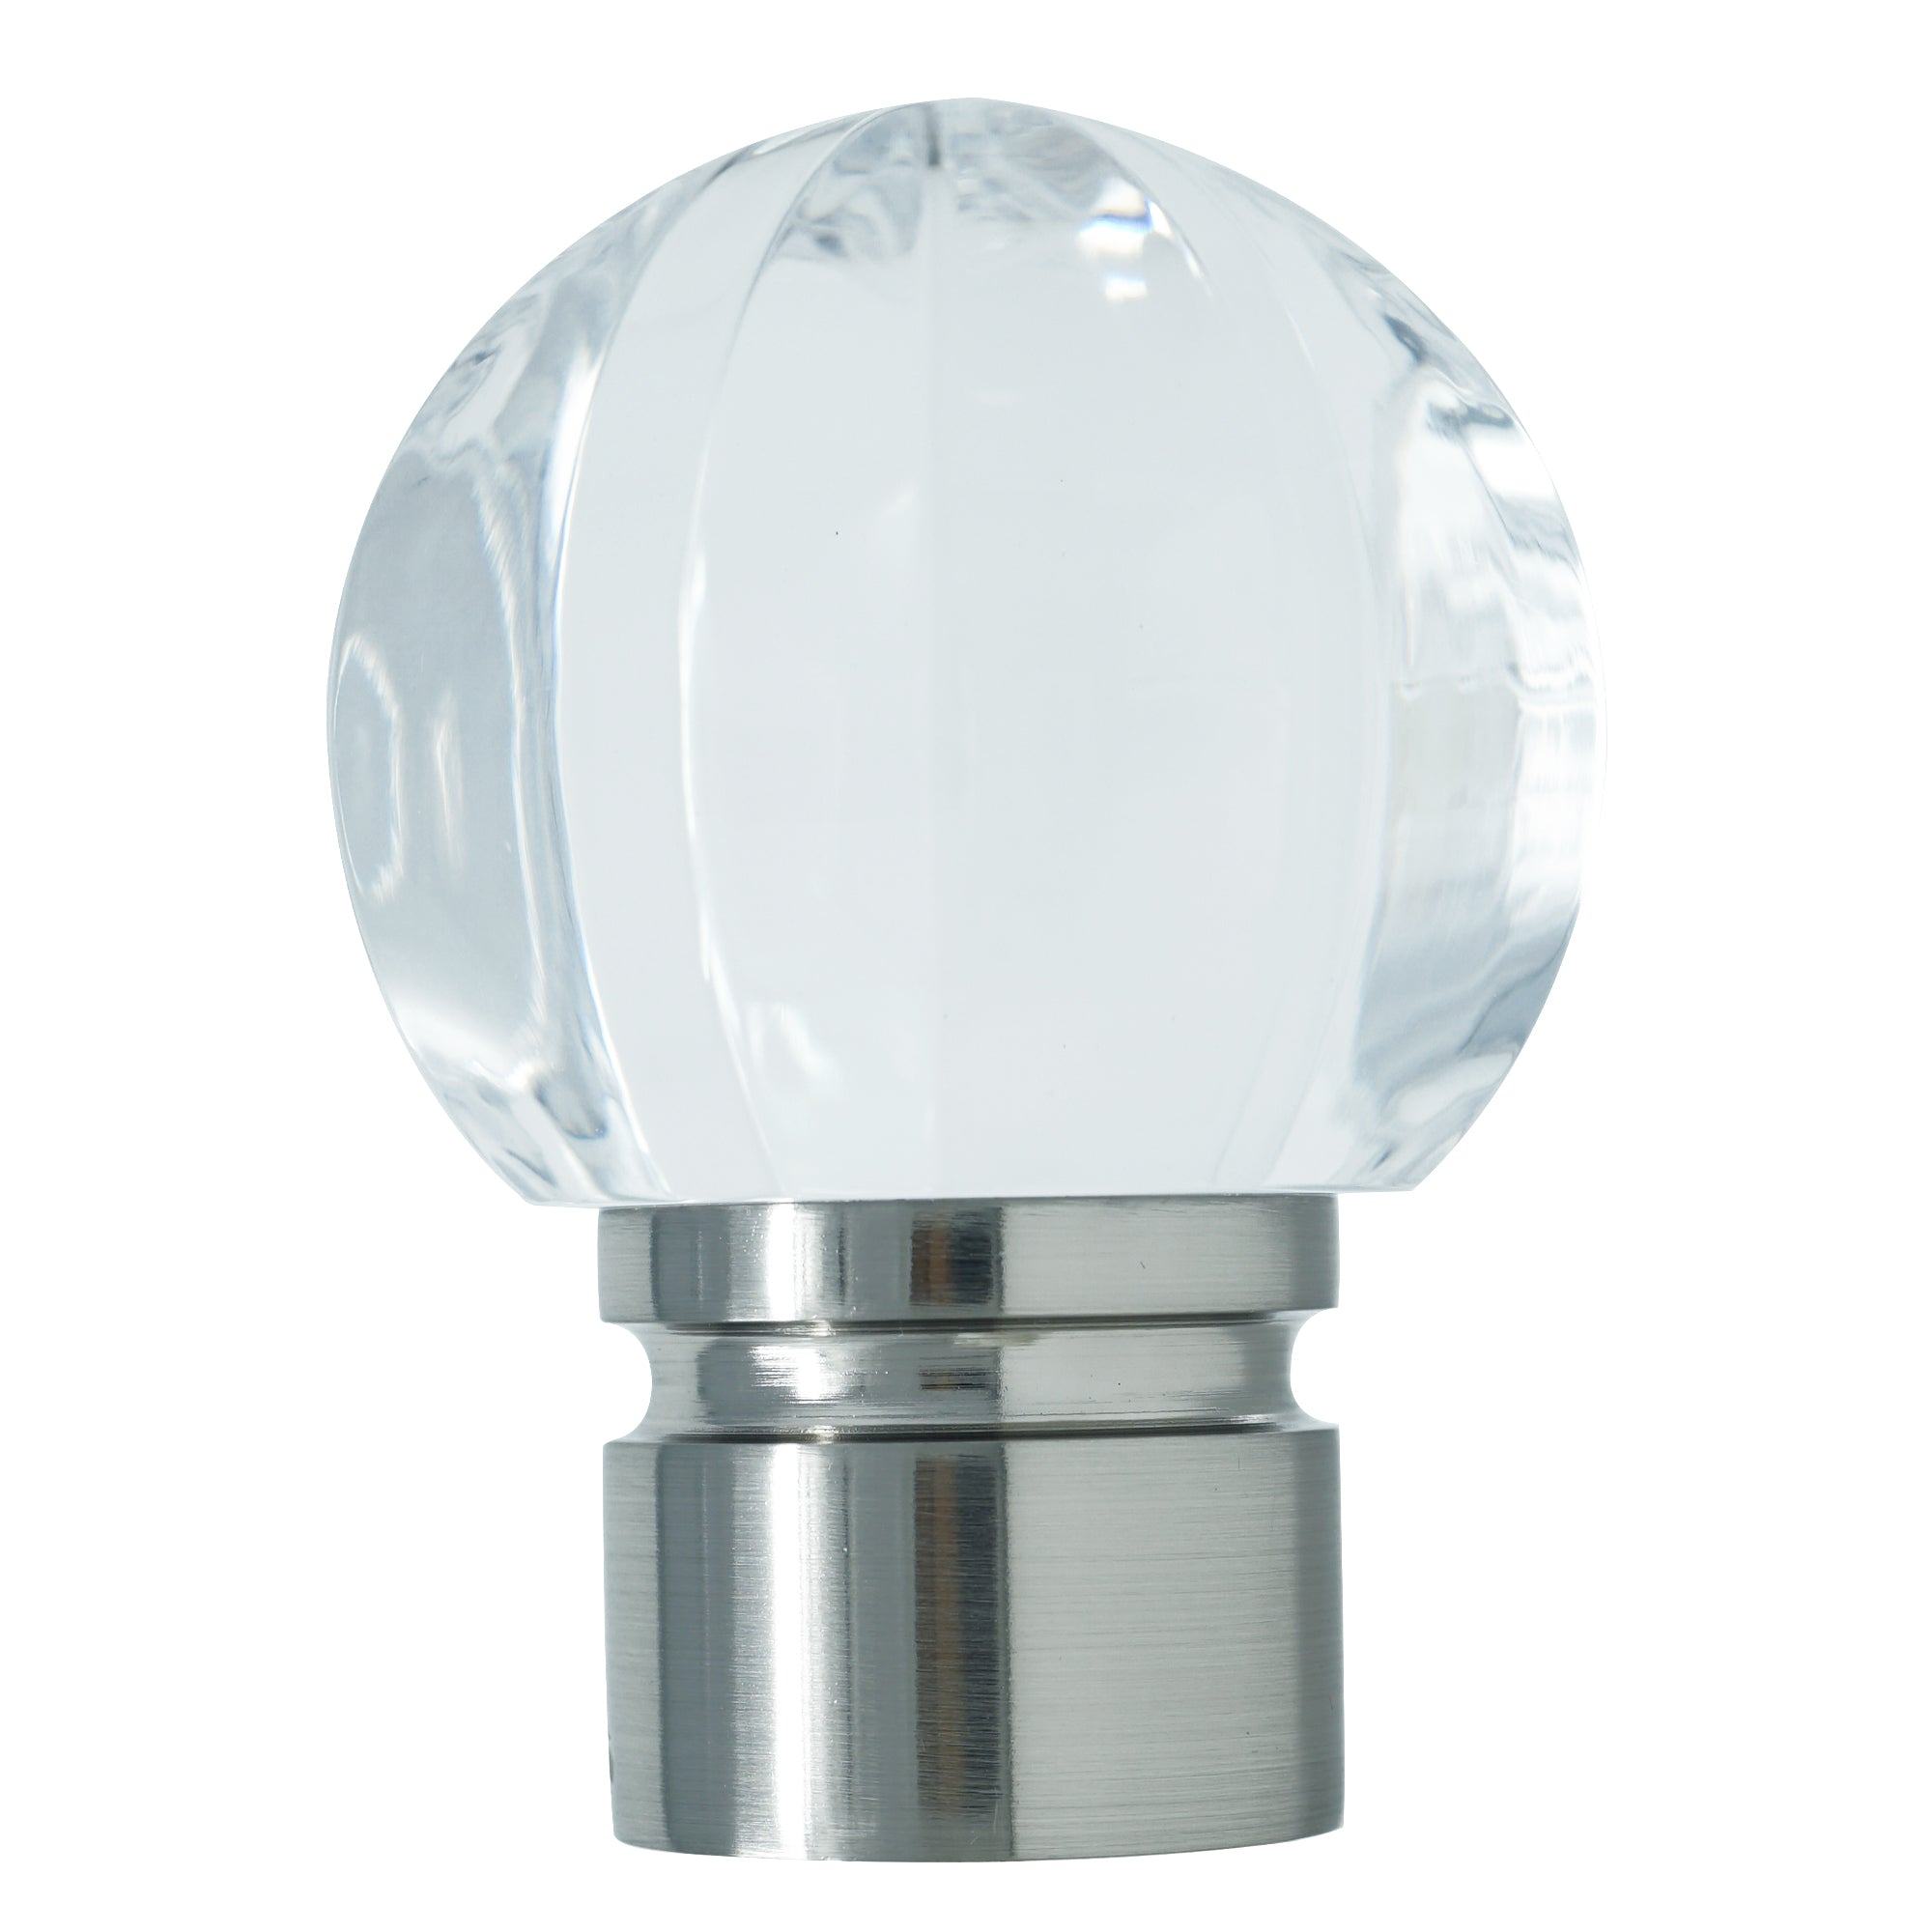 Acrylic Ball Finial - Brushed Nickel Finish